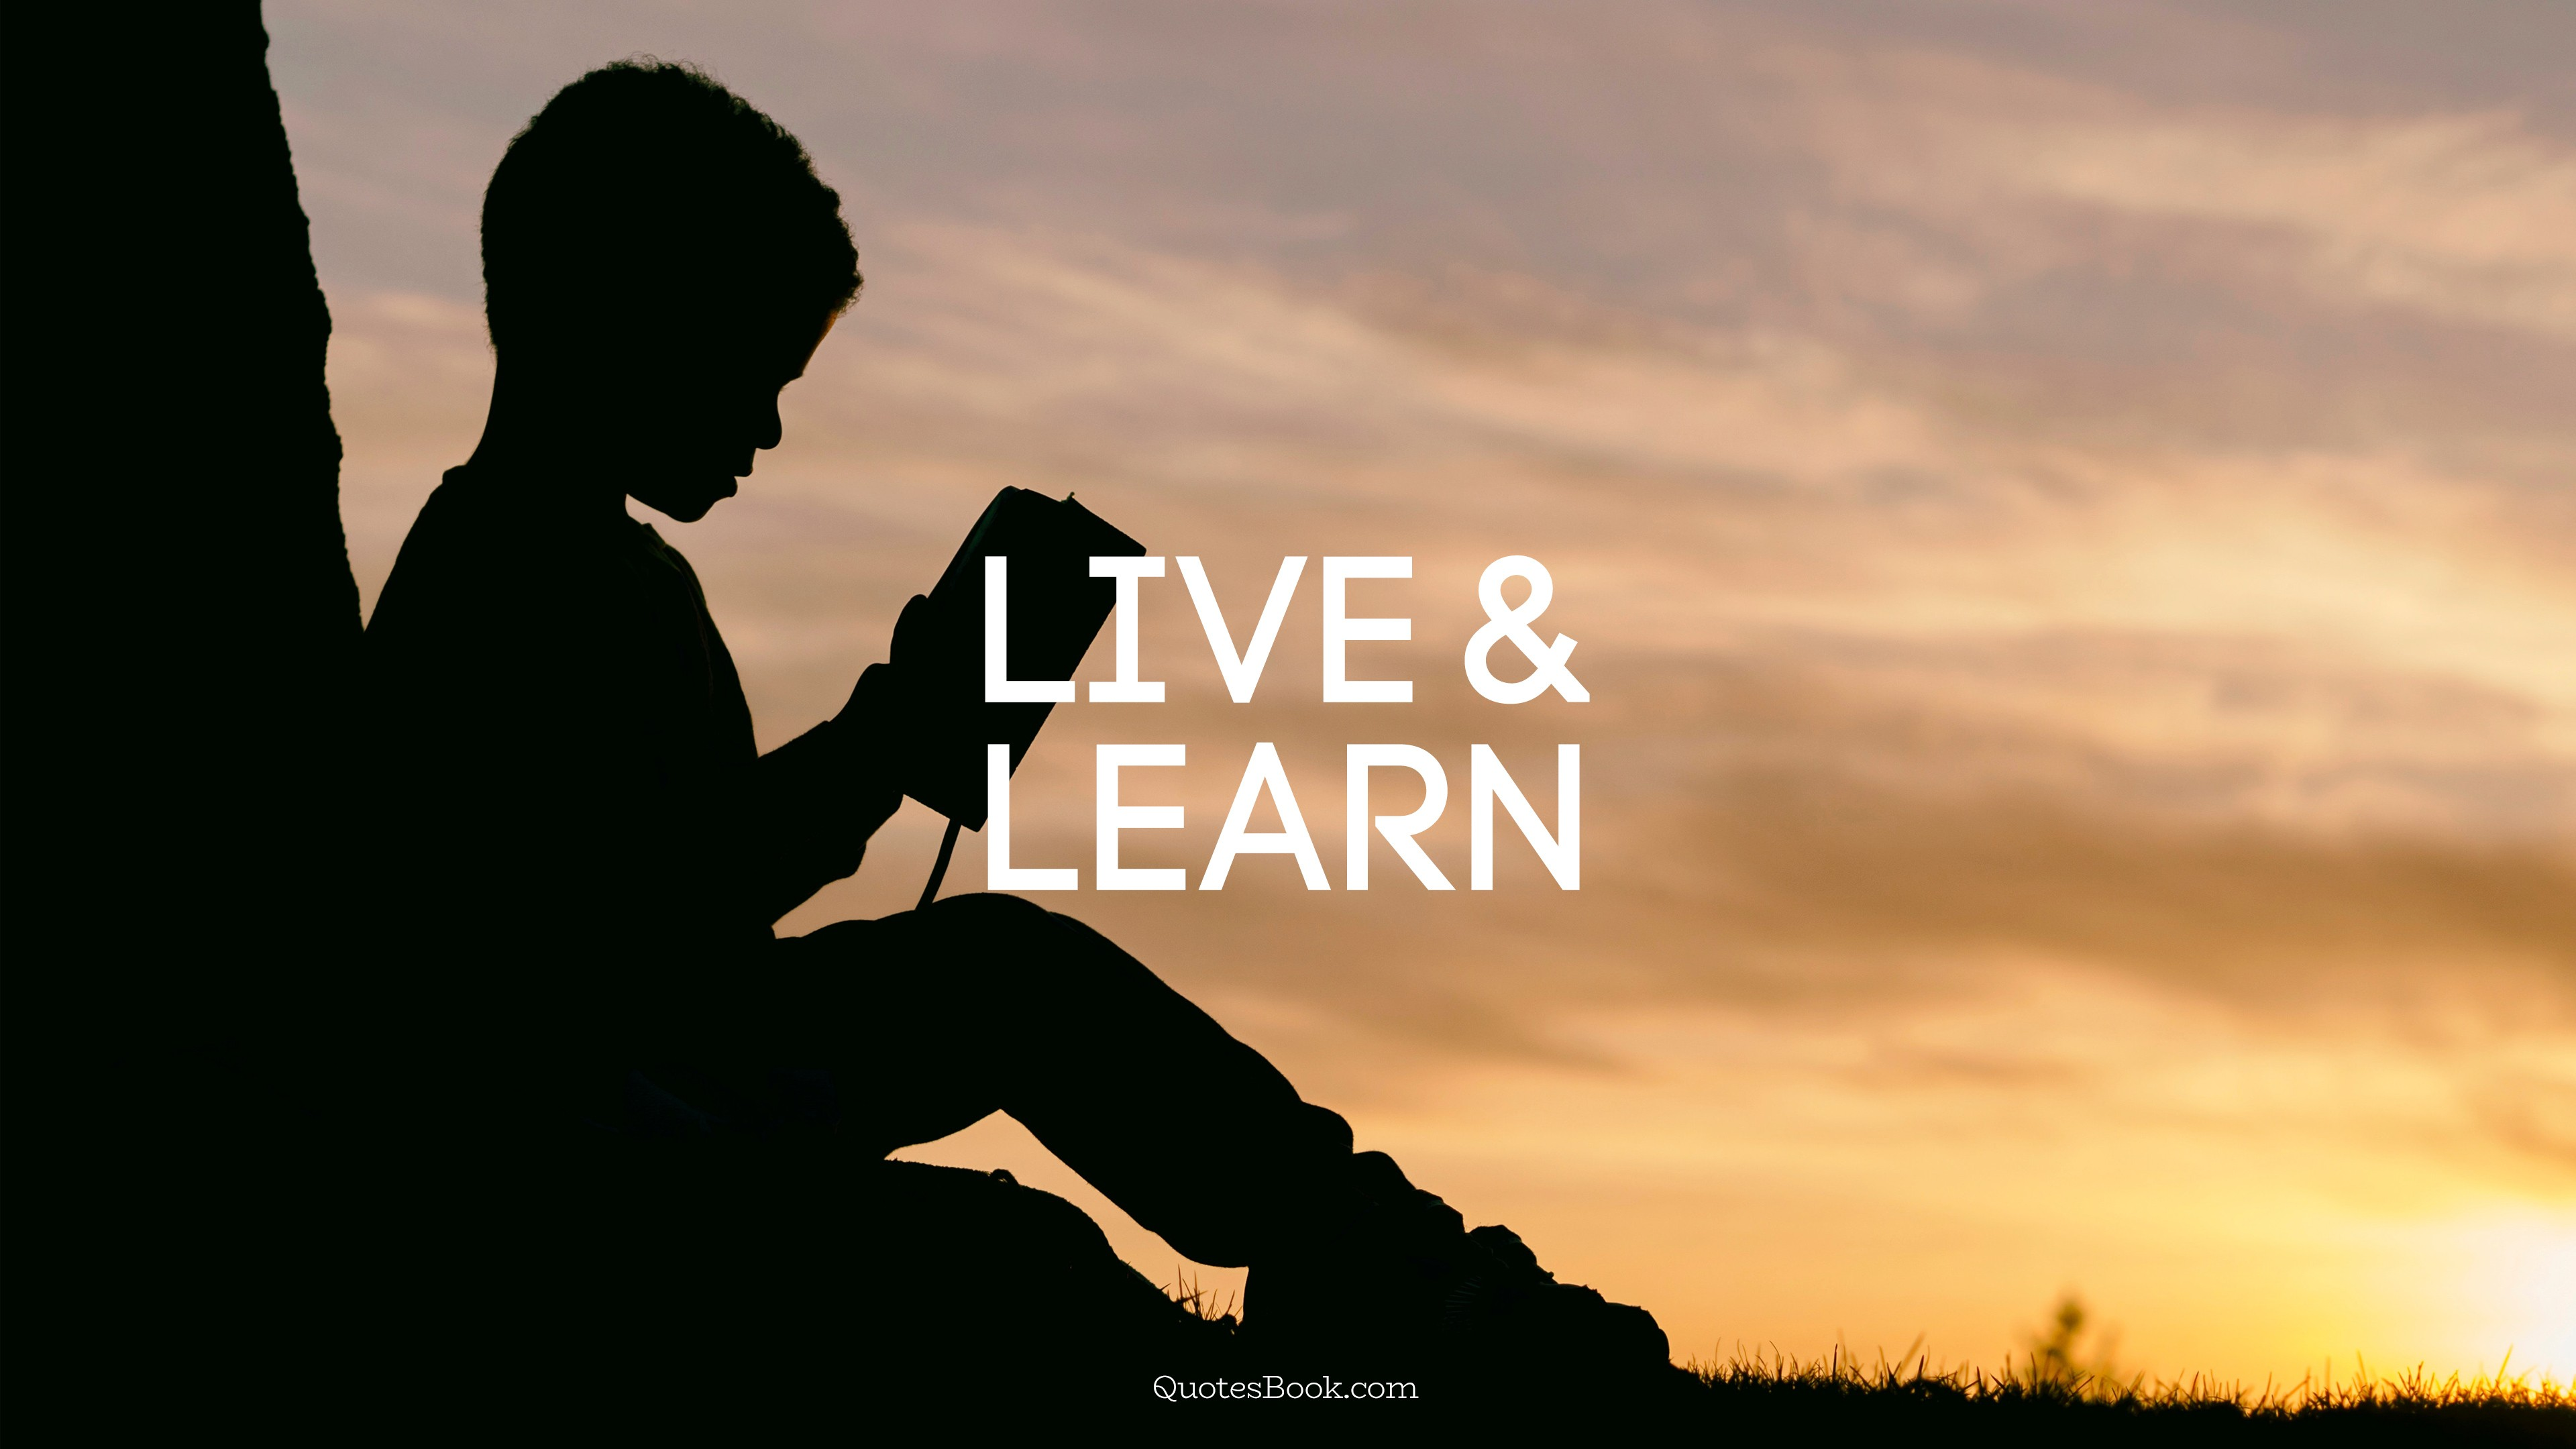 Live And Learn Quotesbook